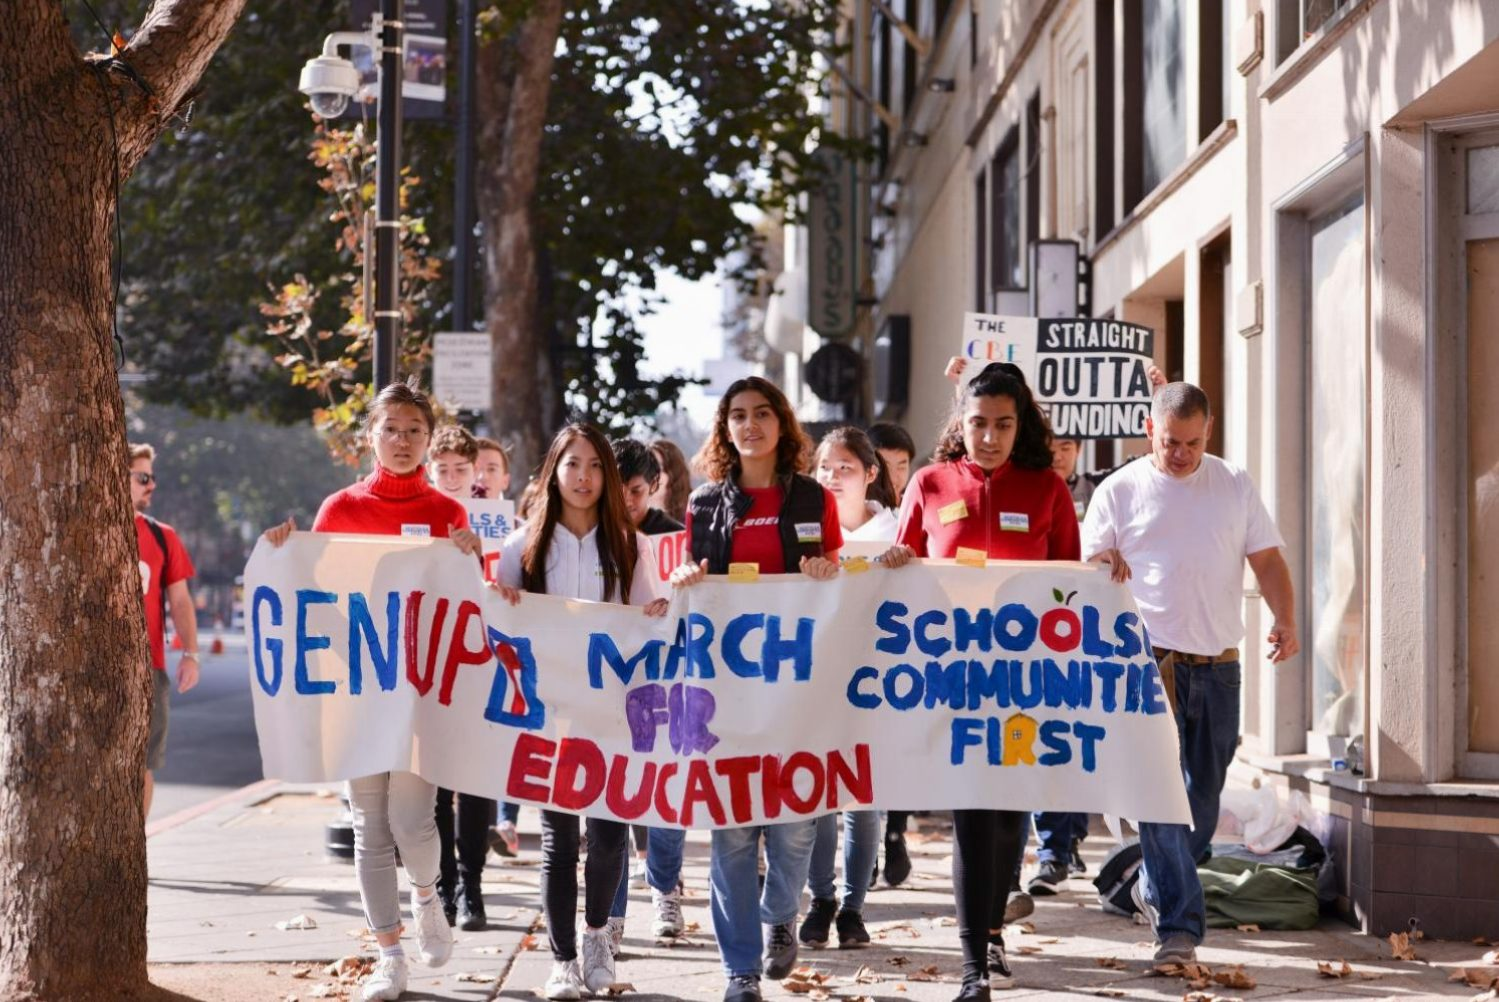 Saanvi Arora (10) joins other high school students from around the Bay Area in leading last Saturday's March for Education. Saanvi is a member of GEN-Up, a student-led social justice organization and student-activist coalition.